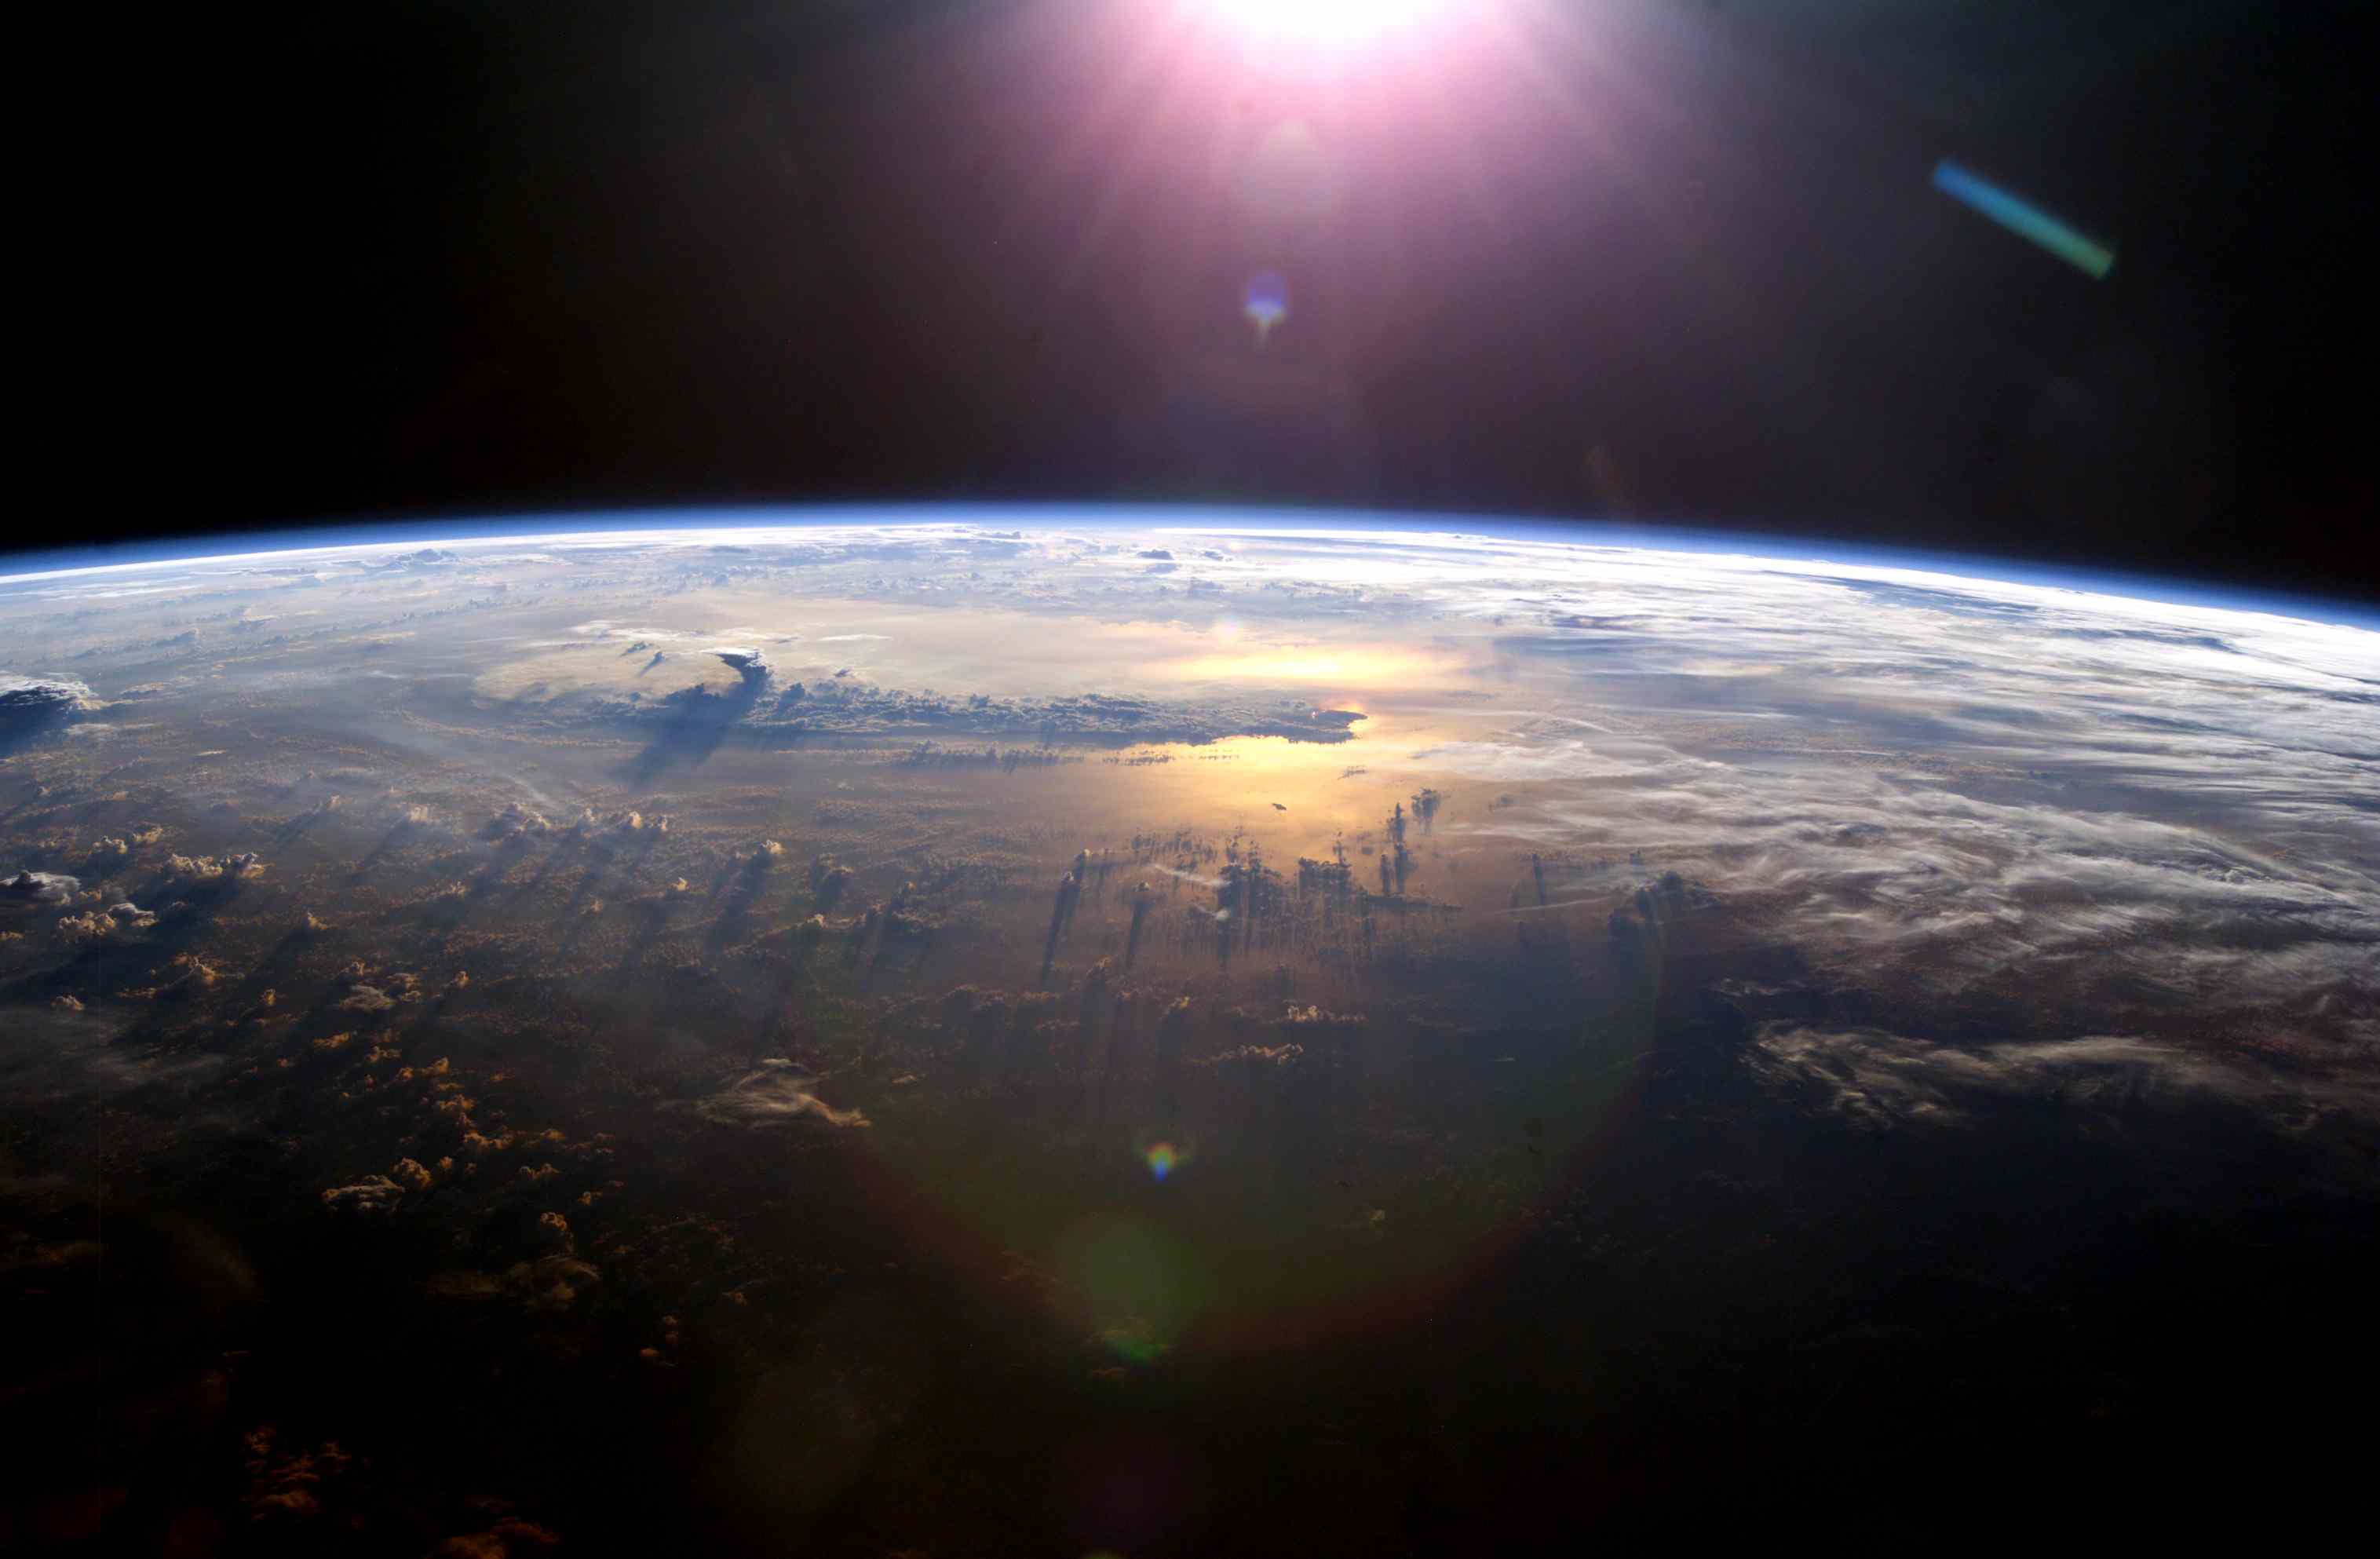 view of Earth's atmosphere from the International Space Station